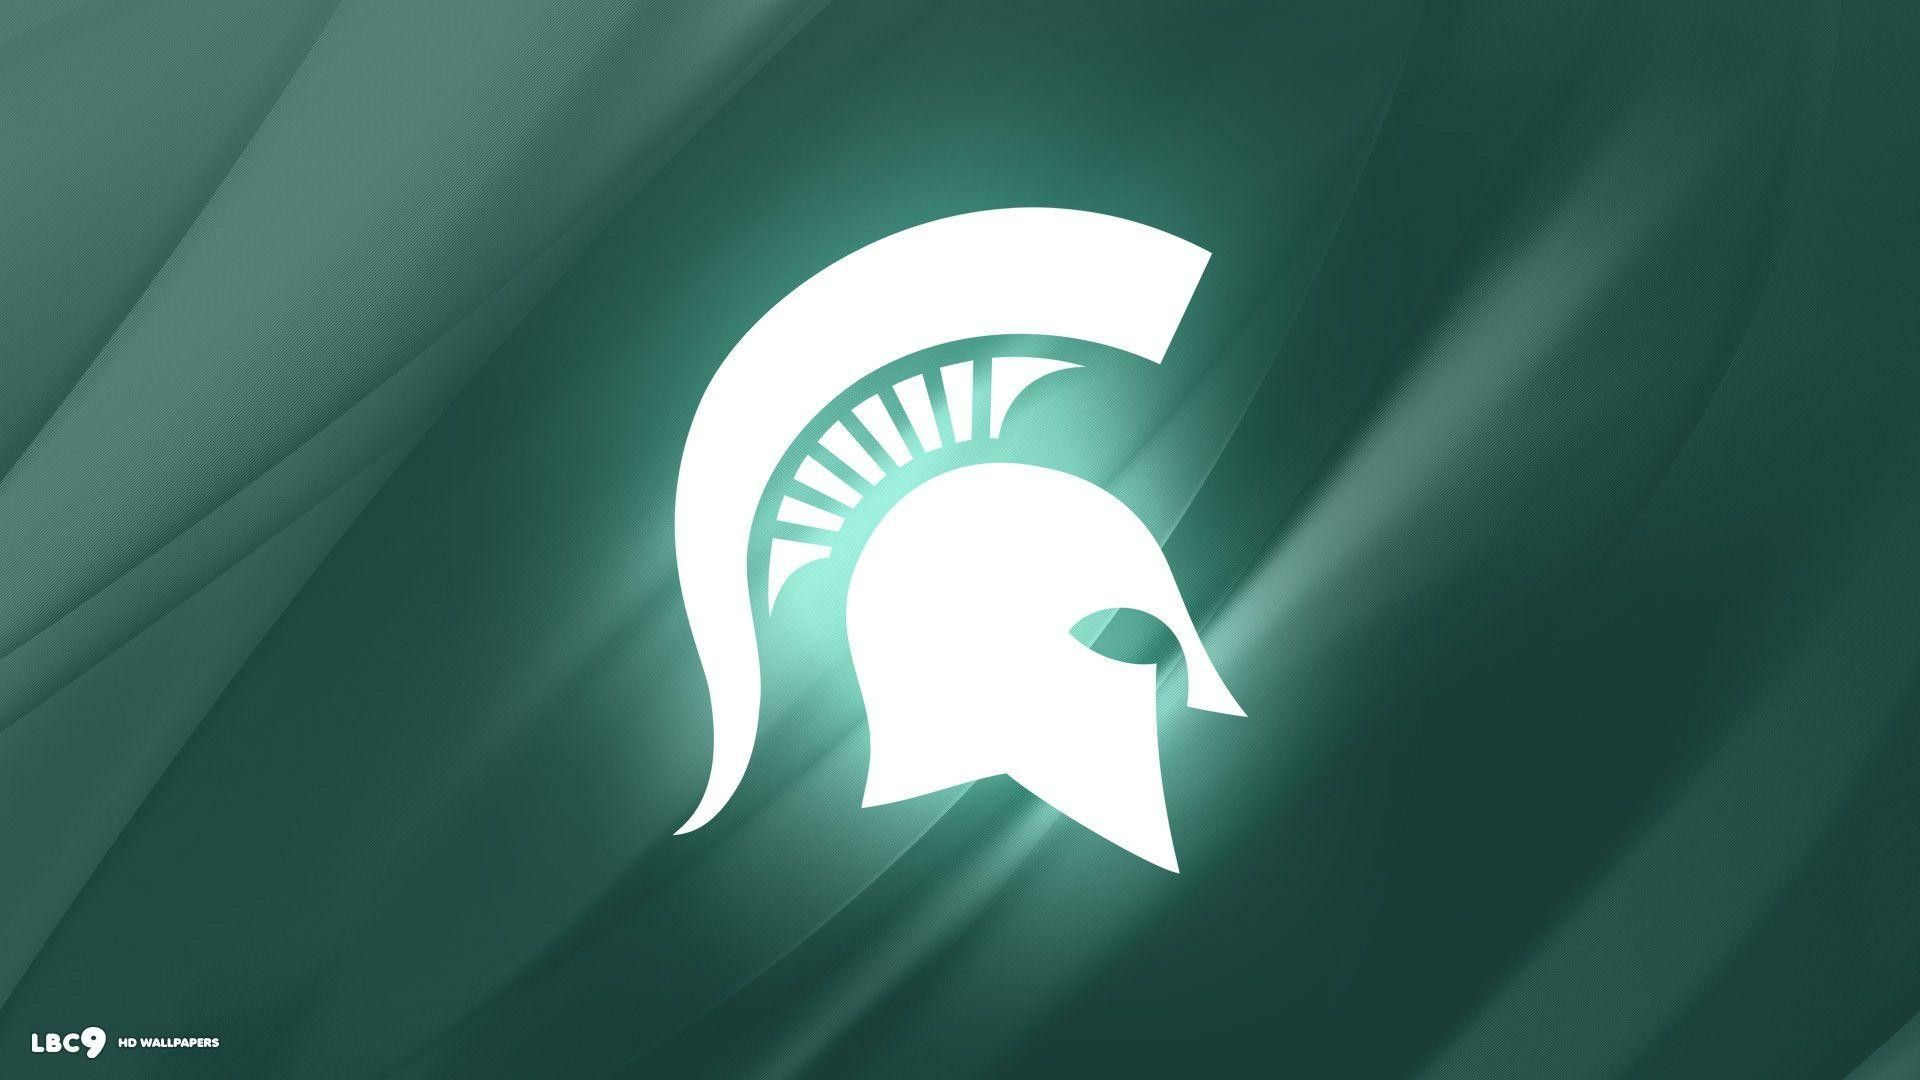 Michigan State Logo Wallpaper 63 Images Michigan State Logo Football Wallpaper Ohio State Wallpaper